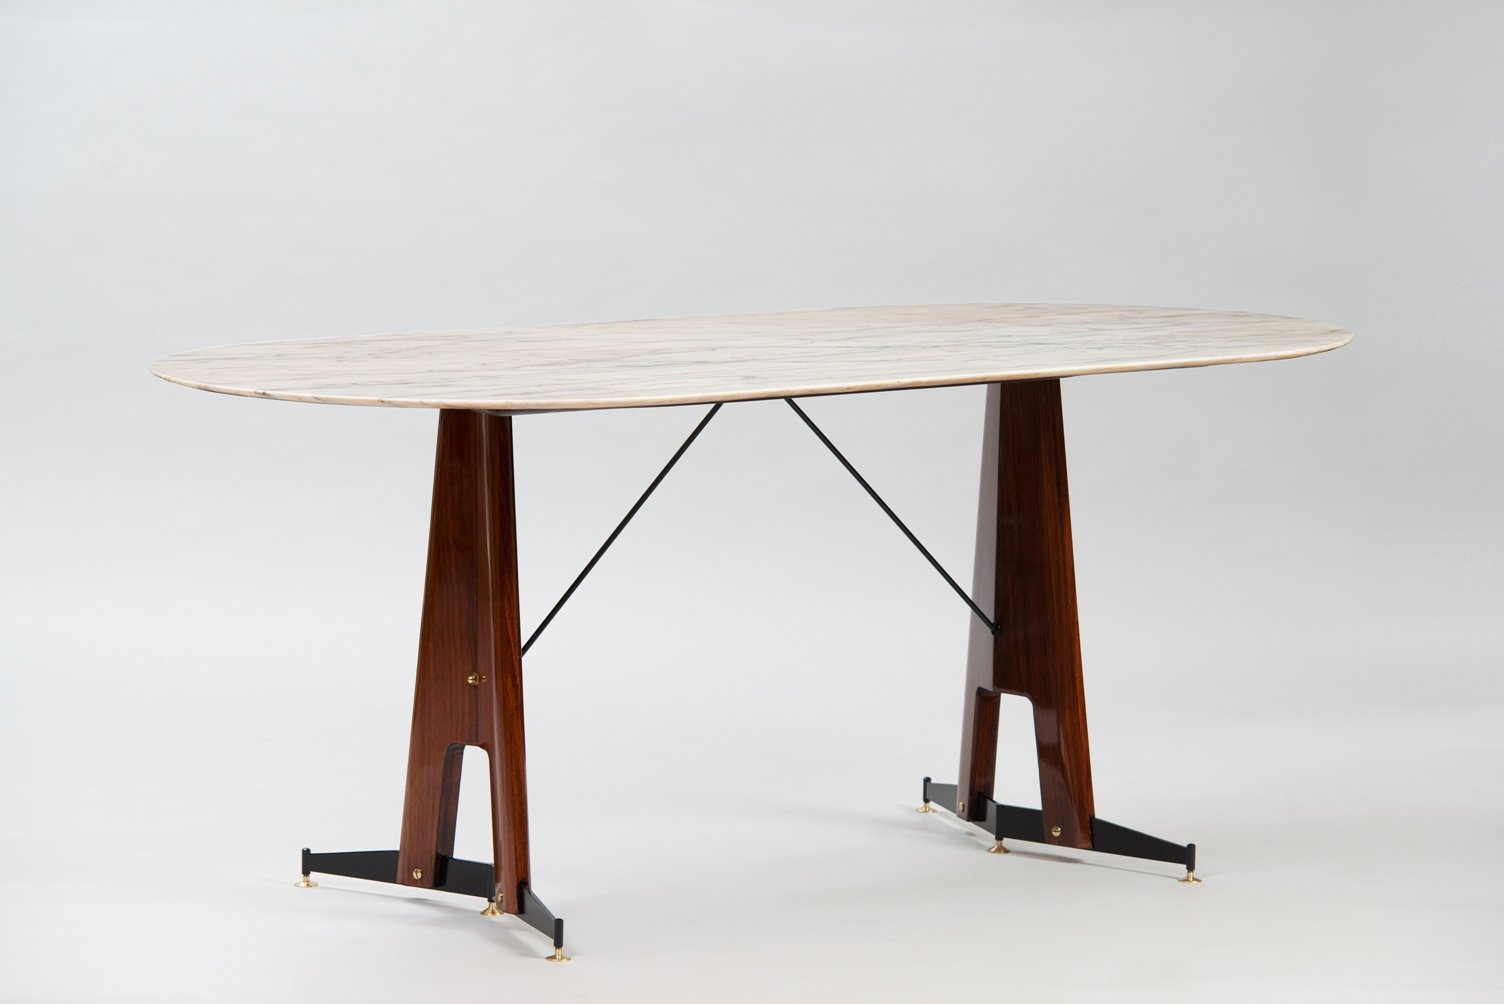 Table salle a manger marbre design for Table salle a manger retractable